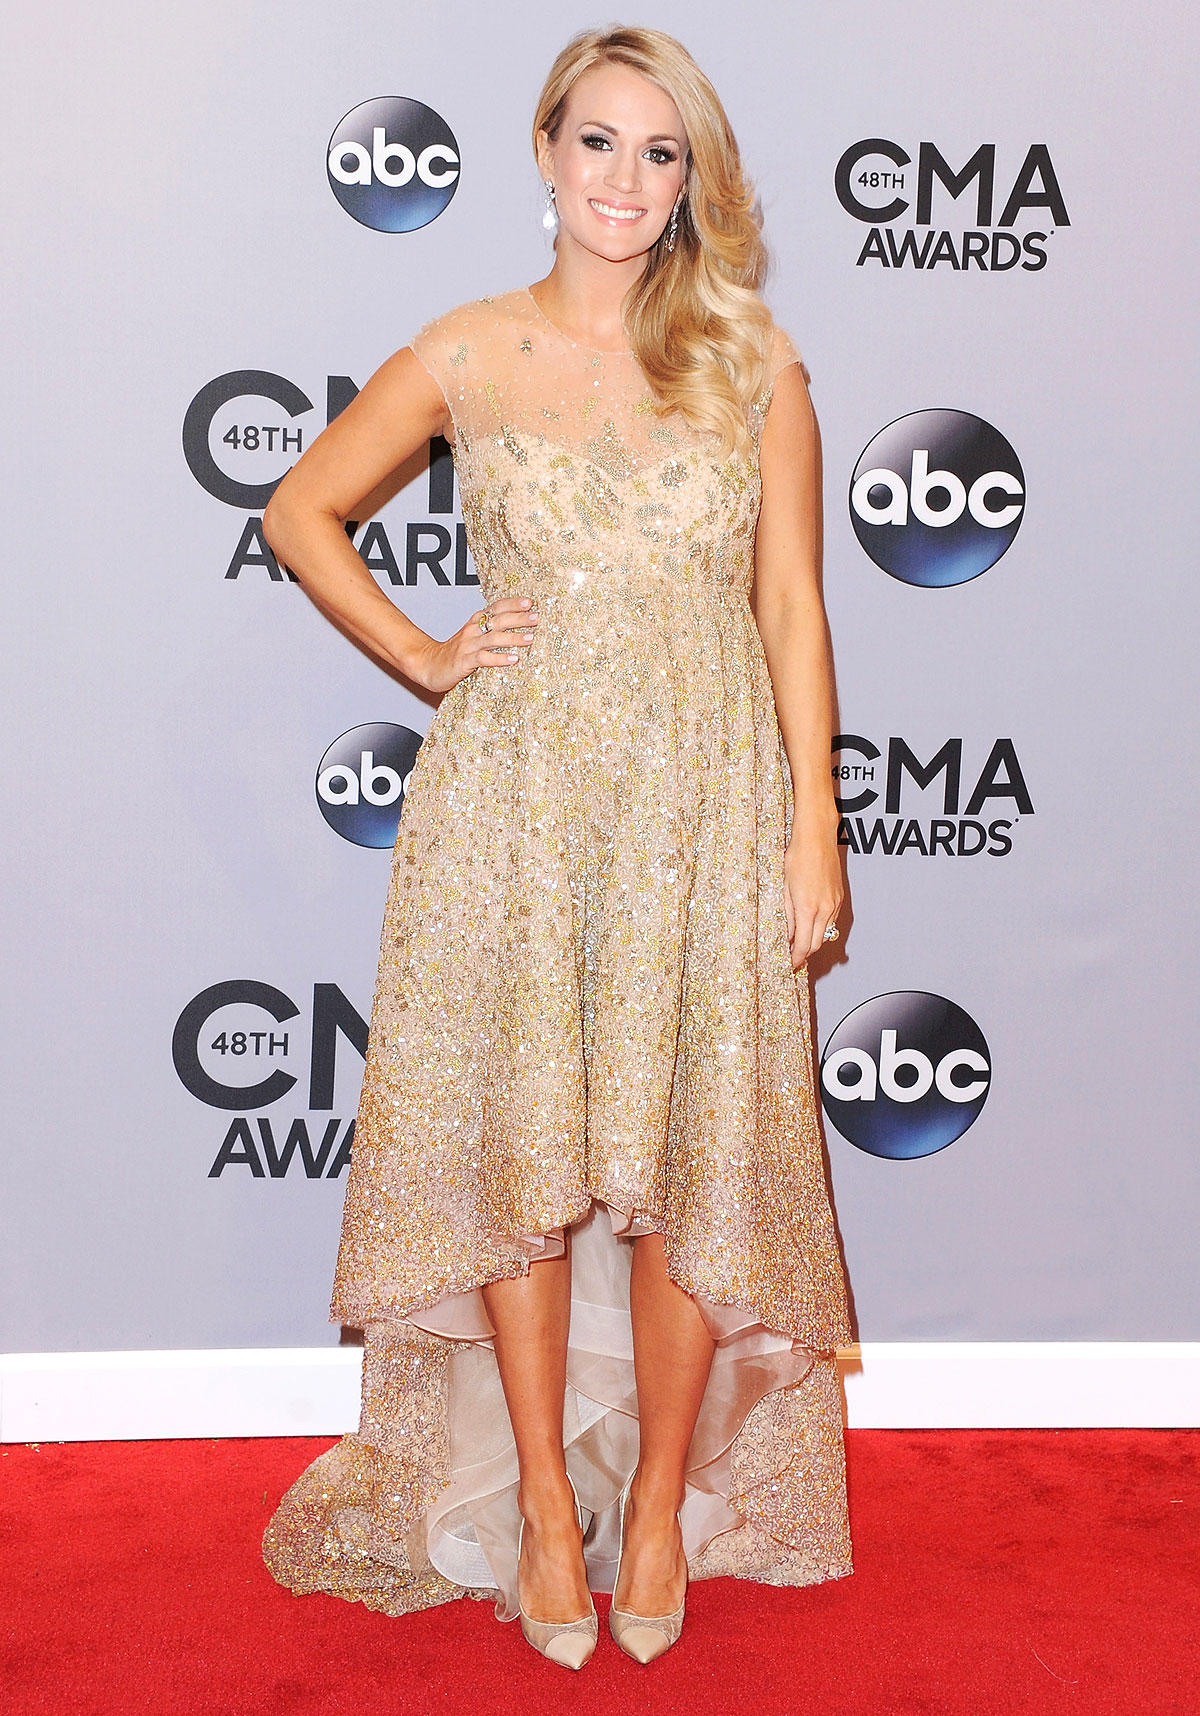 Carrie Underwood Imagines Her Life as a Mom of 2: 'It's Going to Be a Different Ball Game' carrie